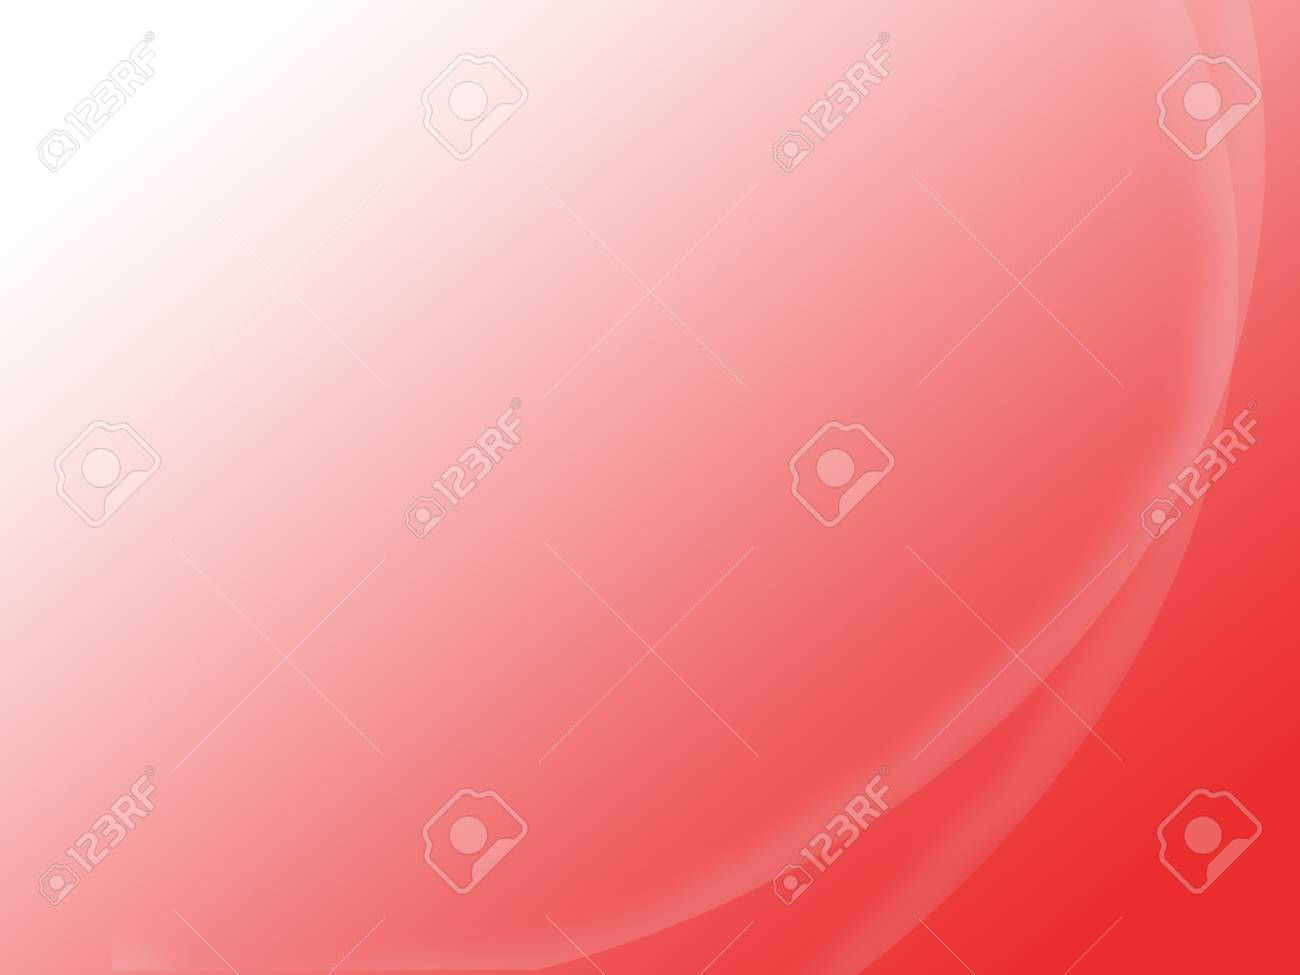 Abstract red background or texture for business card design abstract red background or texture for business card design background with space for text reheart Gallery